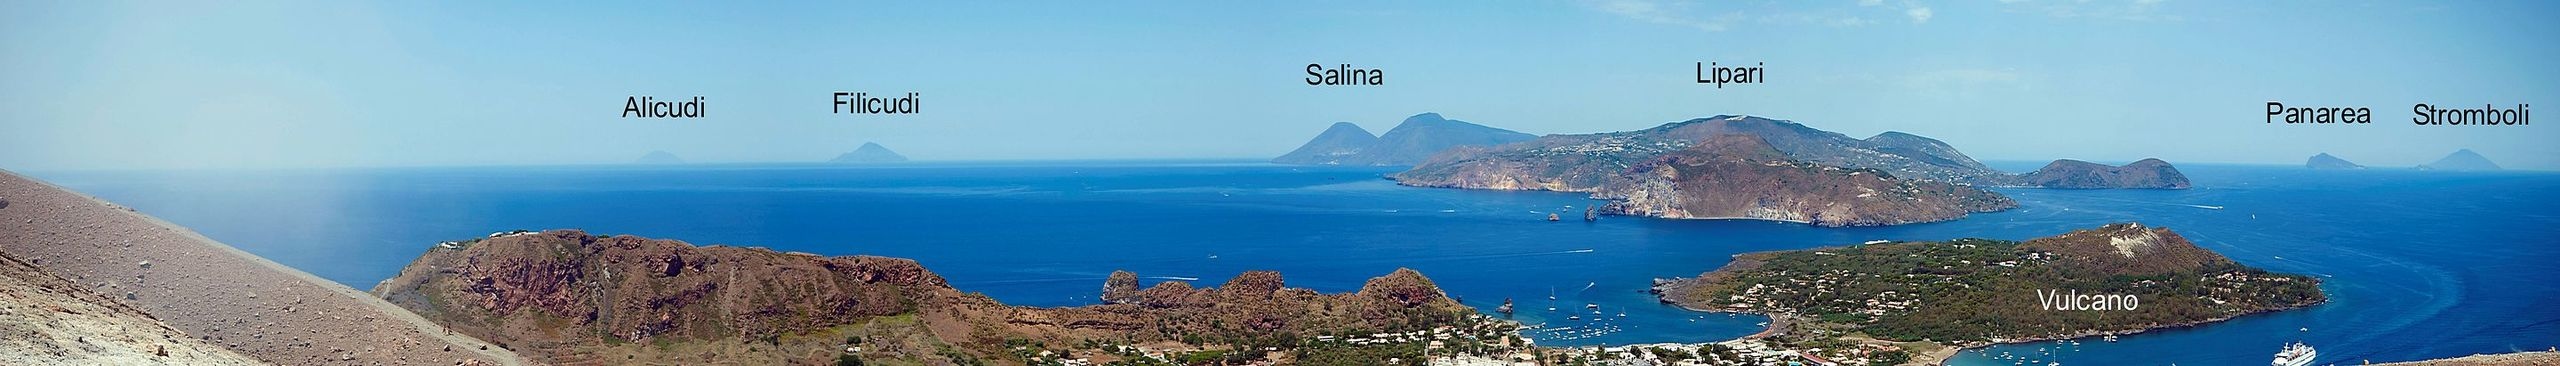 Aeolian Islands Travel guide at Wikivoyage